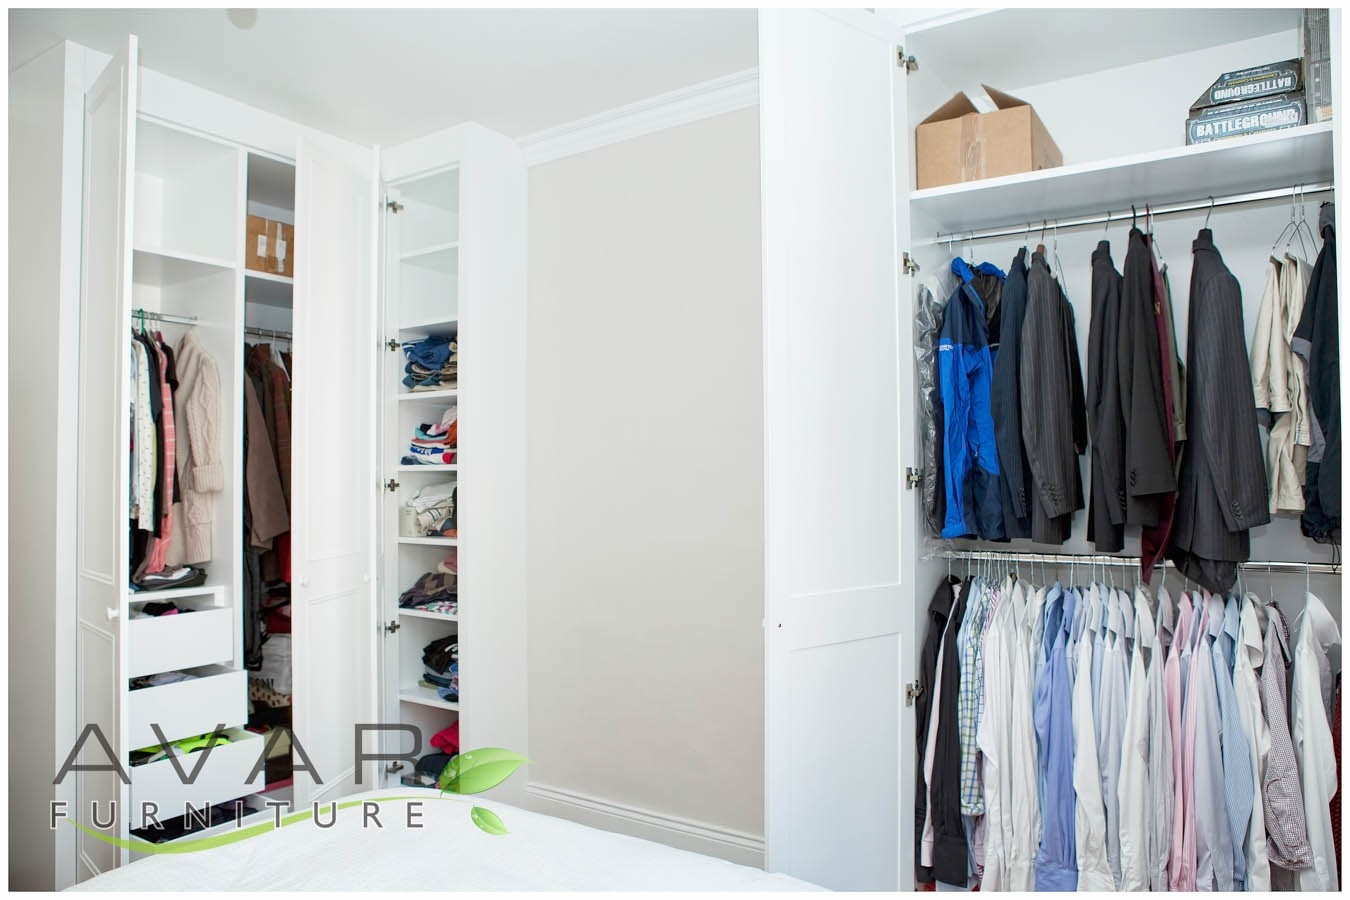 Fitted Wardrobe Ideas Gallery 15 North London Uk Avar Within Alcove Wardrobes Designs (Image 10 of 15)